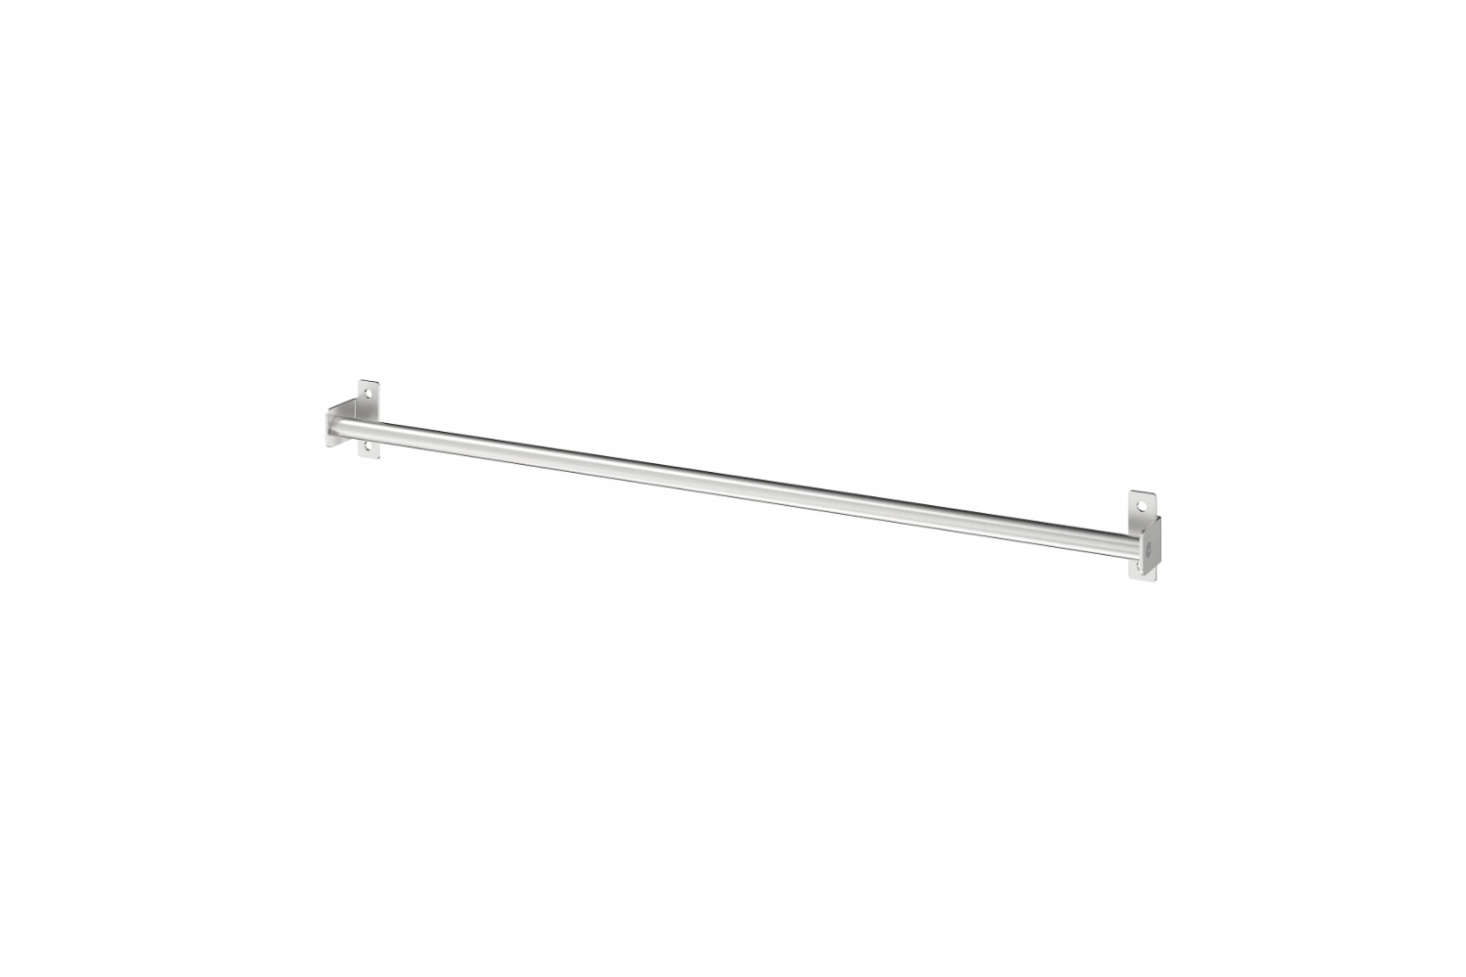 The always-affordable Ikea offers the Kungsfors Rail in Stainless Steel for $5.99.